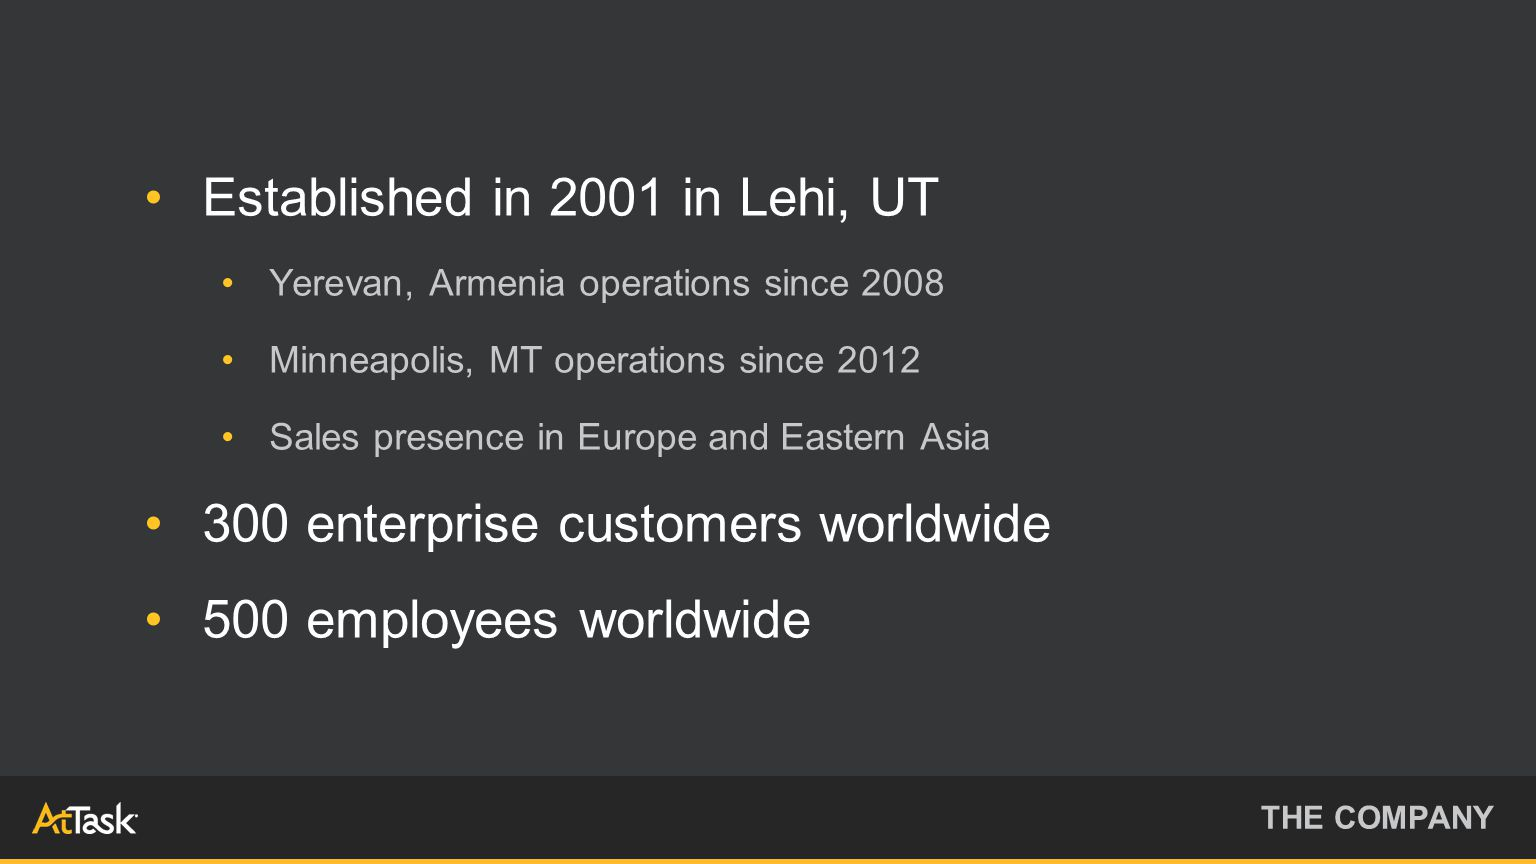 Established in 2001 in Lehi, UT Yerevan, Armenia operations since 2008 Minneapolis, MT operations since 2012 Sales presence in Europe and Eastern Asia